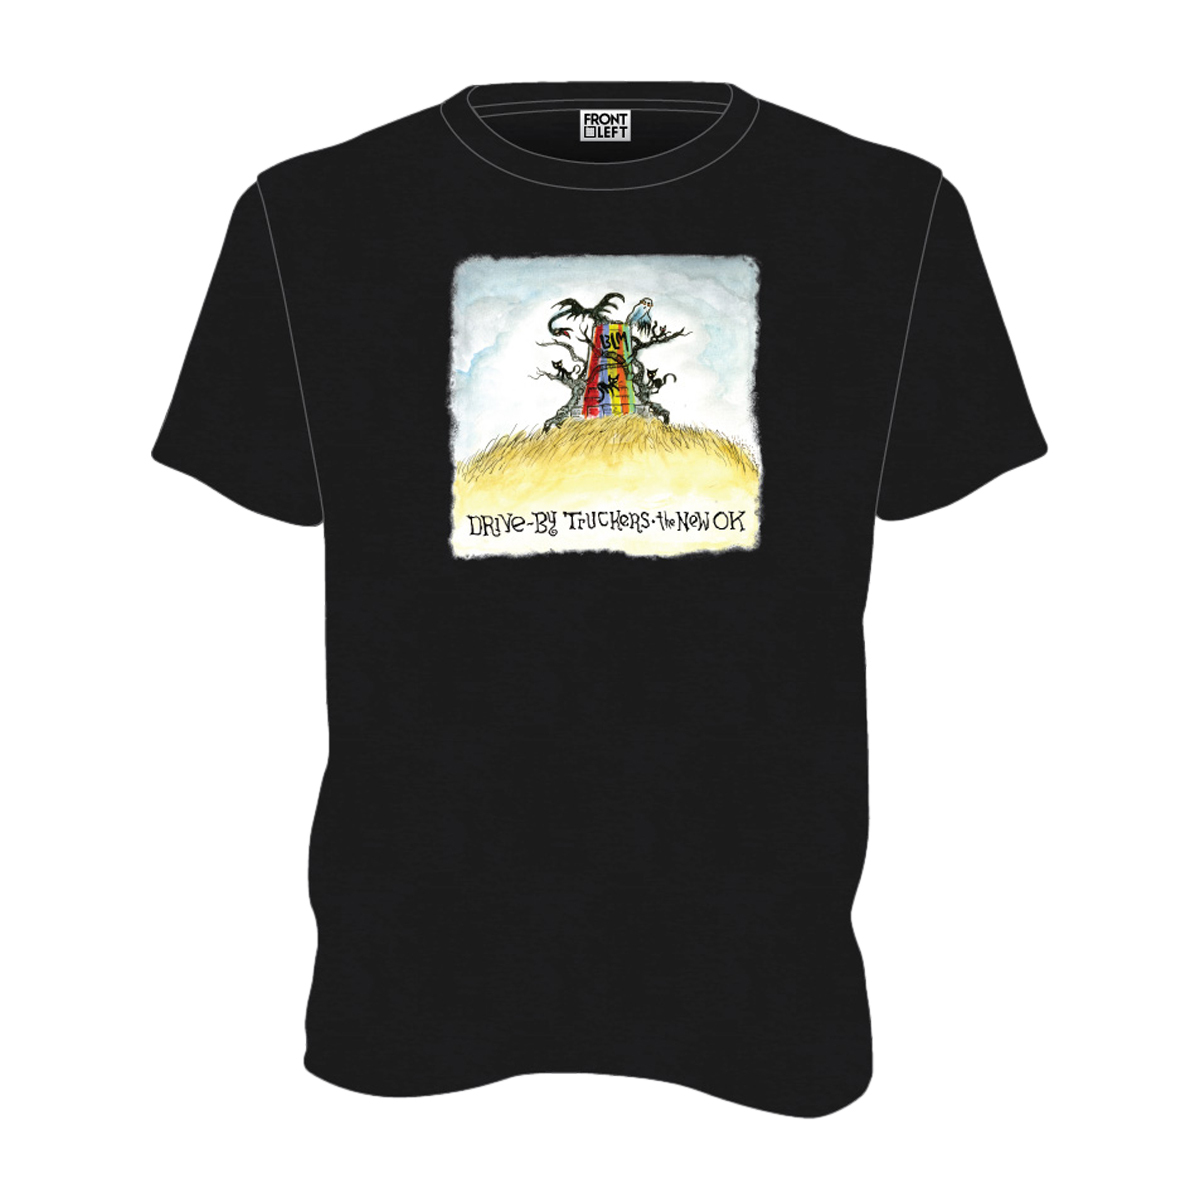 The New Ok T-Shirt